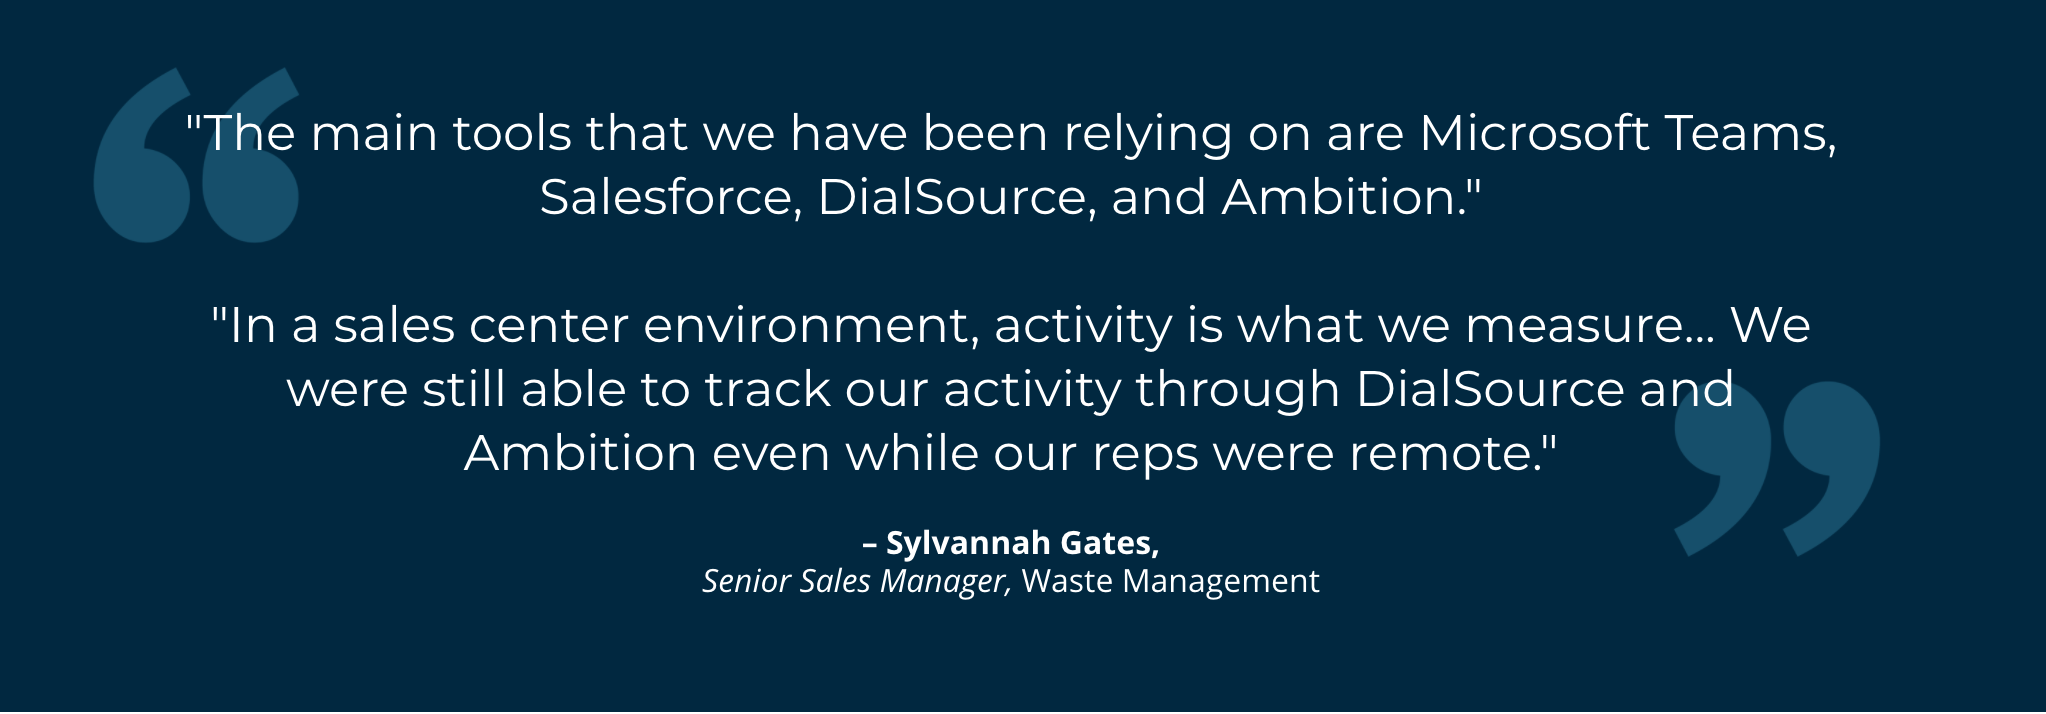 """The main tools that we have been relying on are Microsoft Teams, Salesforce, DialSource, and Ambition.""""  """"In a sales center environment, activity is what we measure... We were still able to track our activity through DialSource and Ambition even while our reps were remote."""